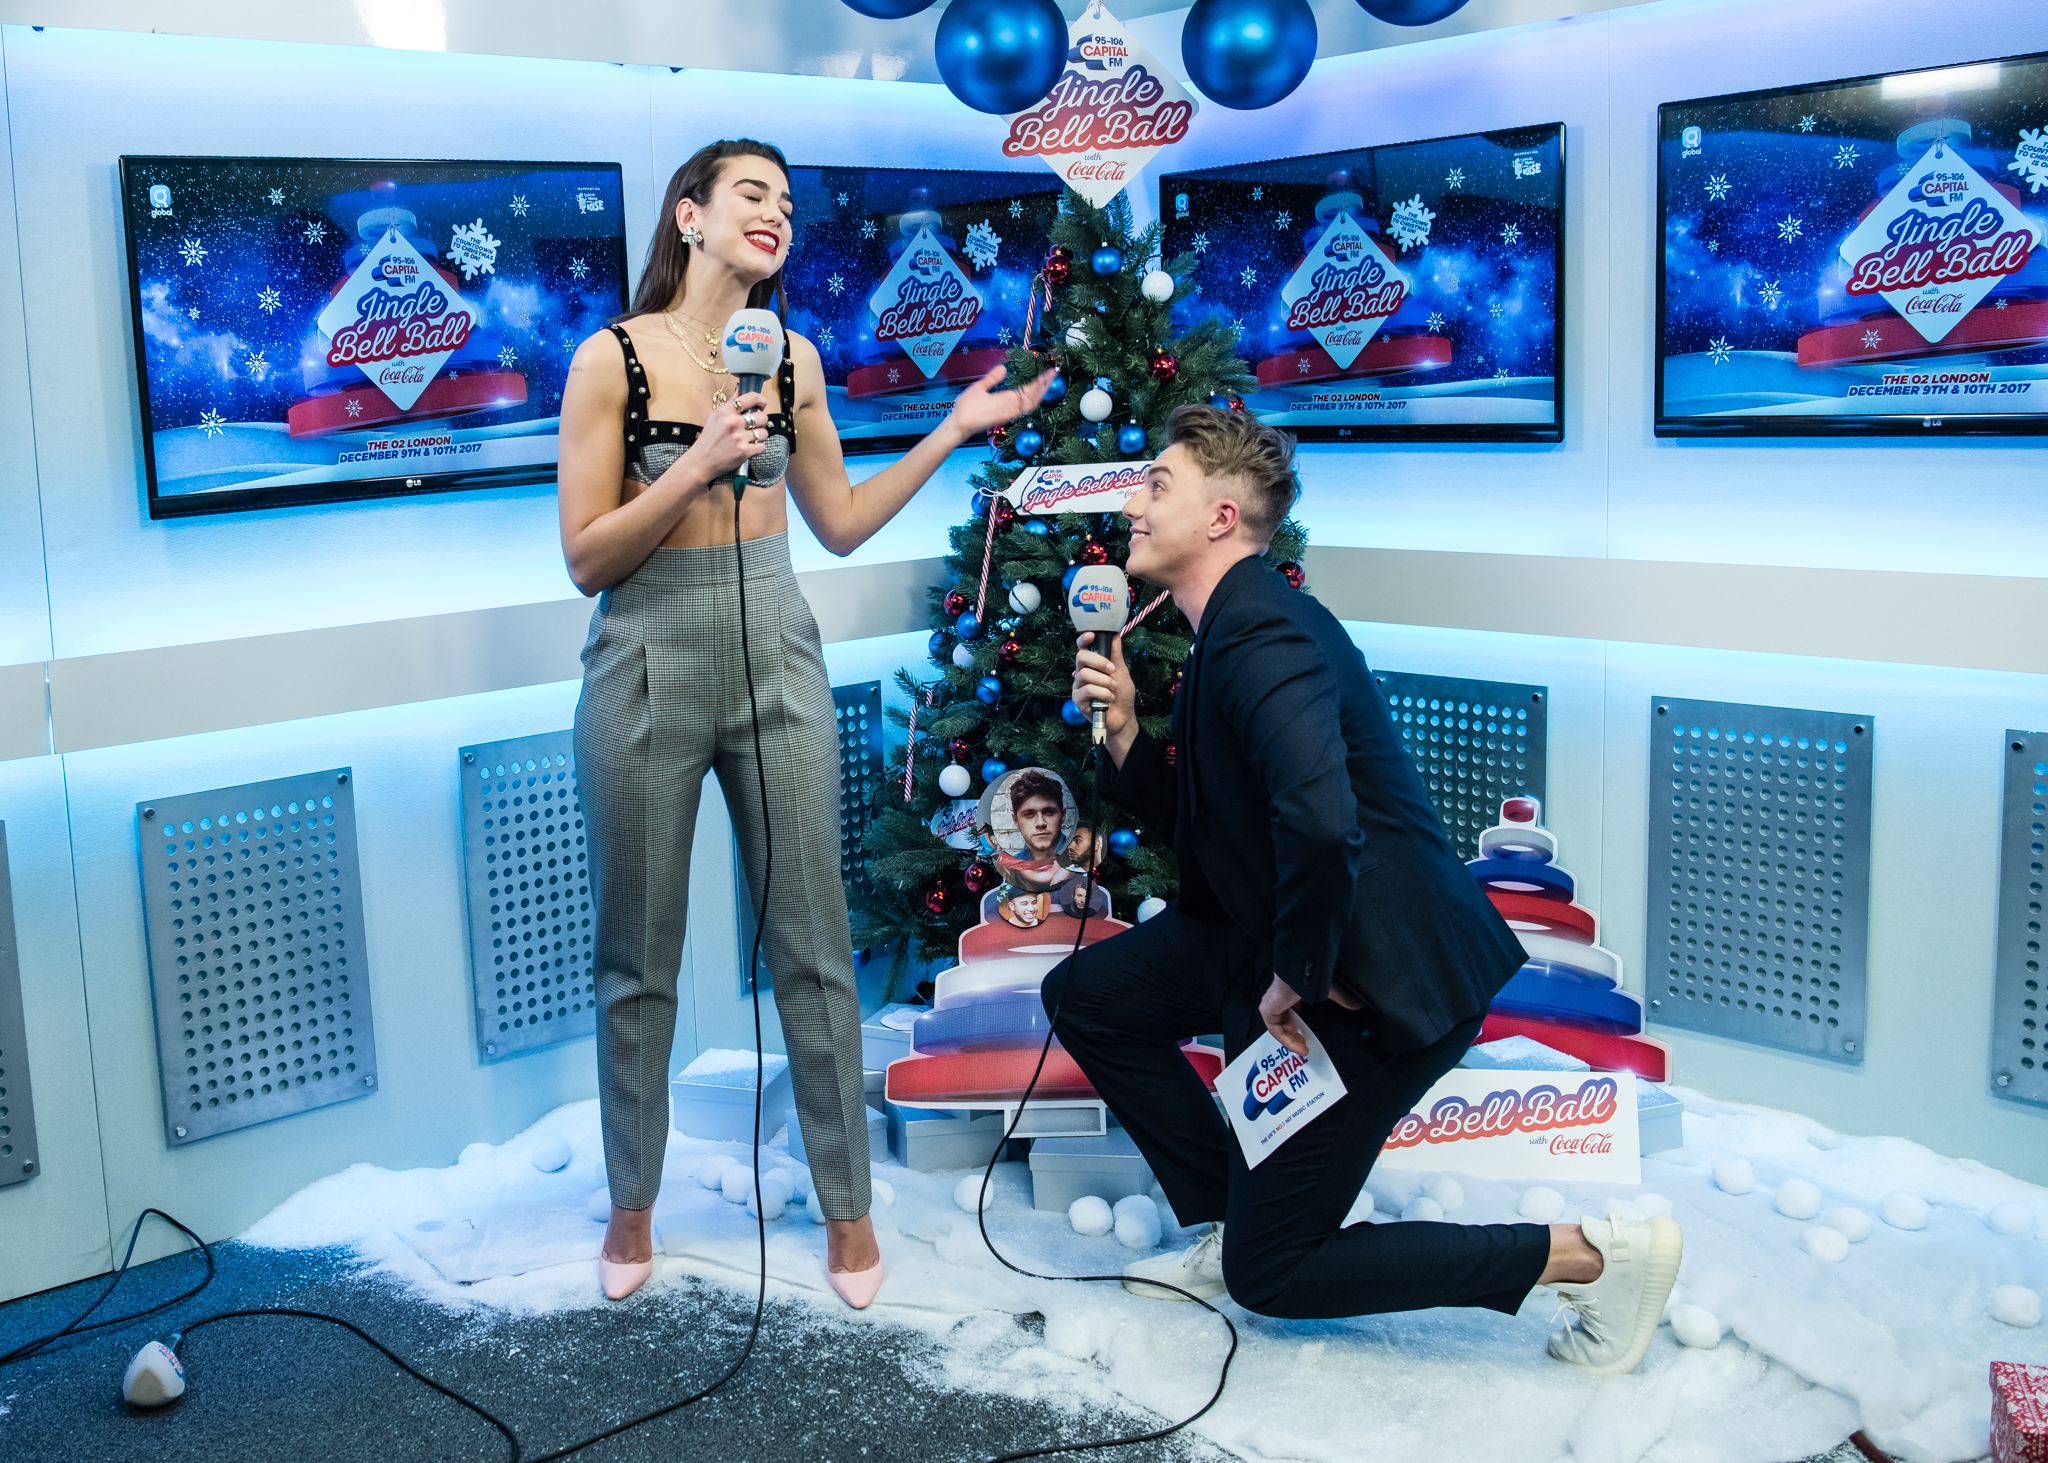 Dua Lipa with Roman Kemp